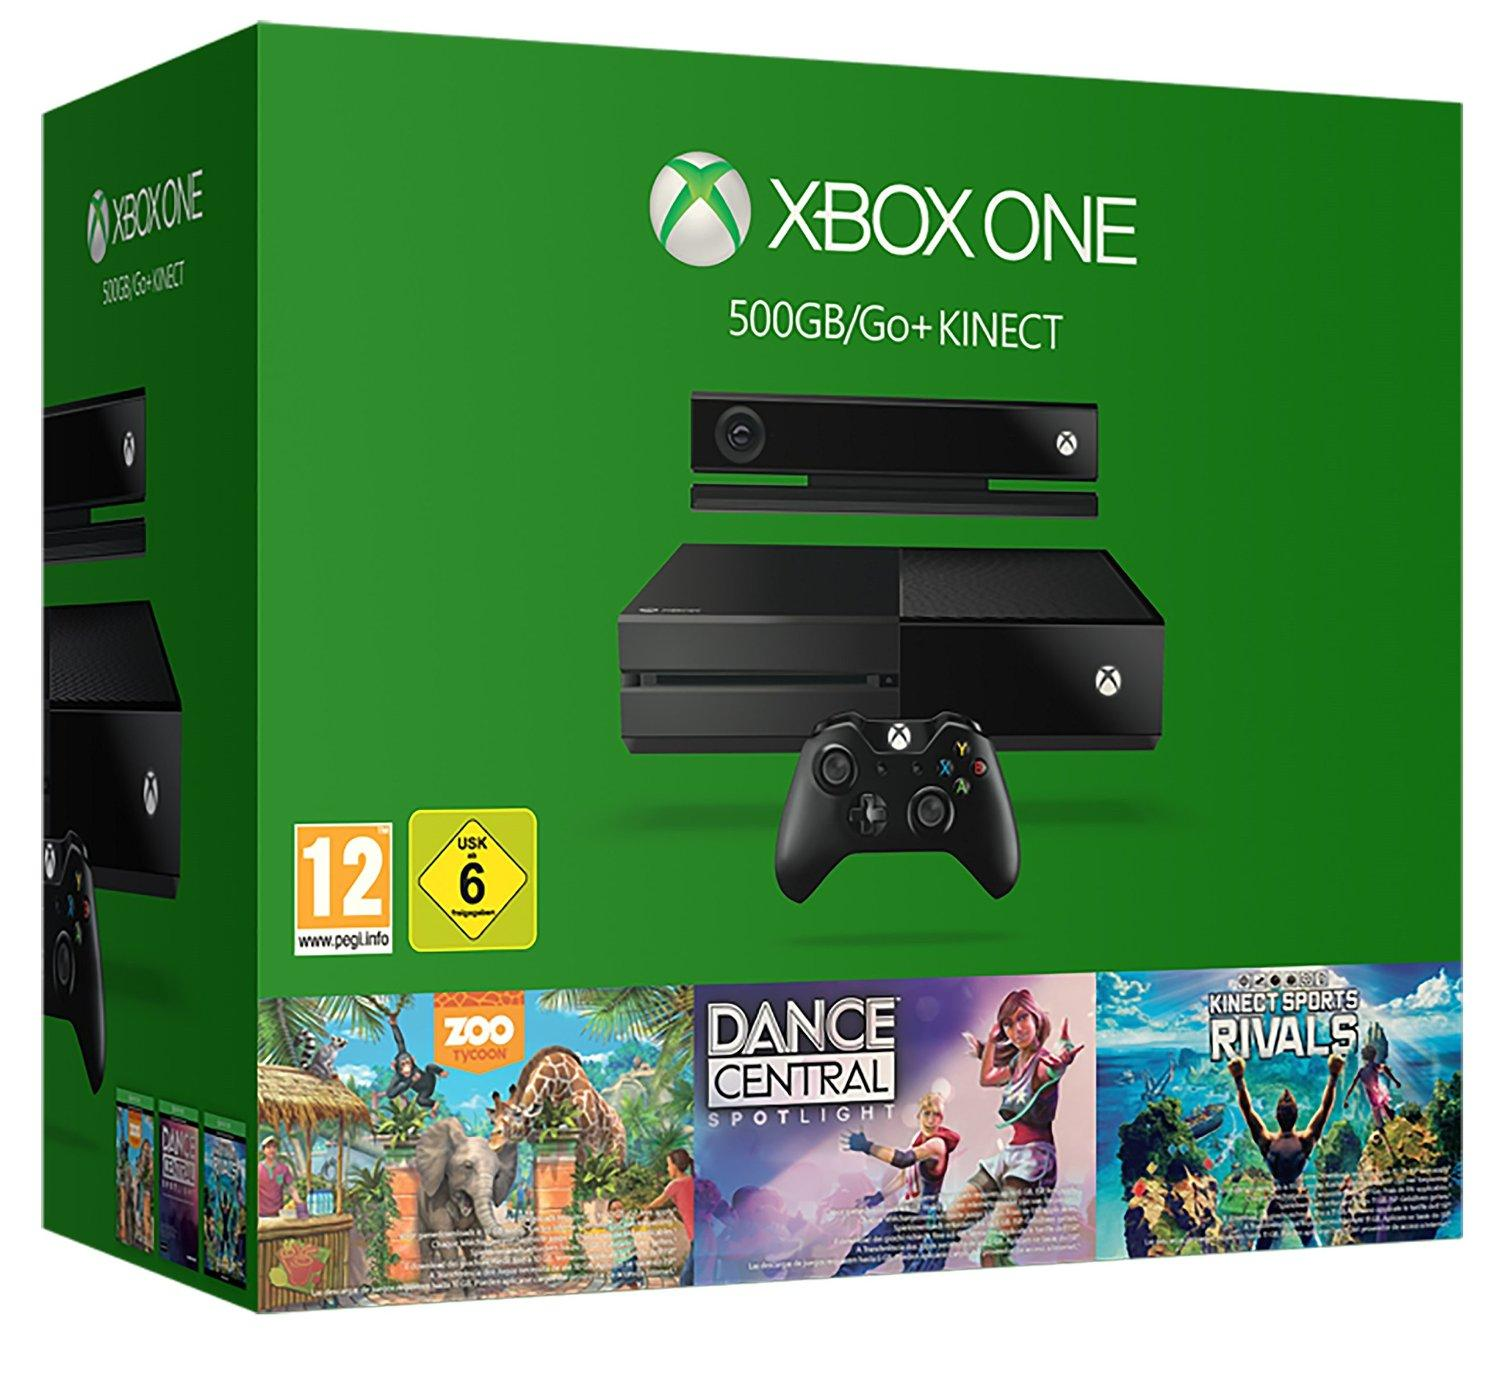 £209.99 Xbox One 500GB Console with Kinect - 3 Game Value Bundle (Kinect Sports Rivals, Zoo Tycoon and Dance Central)